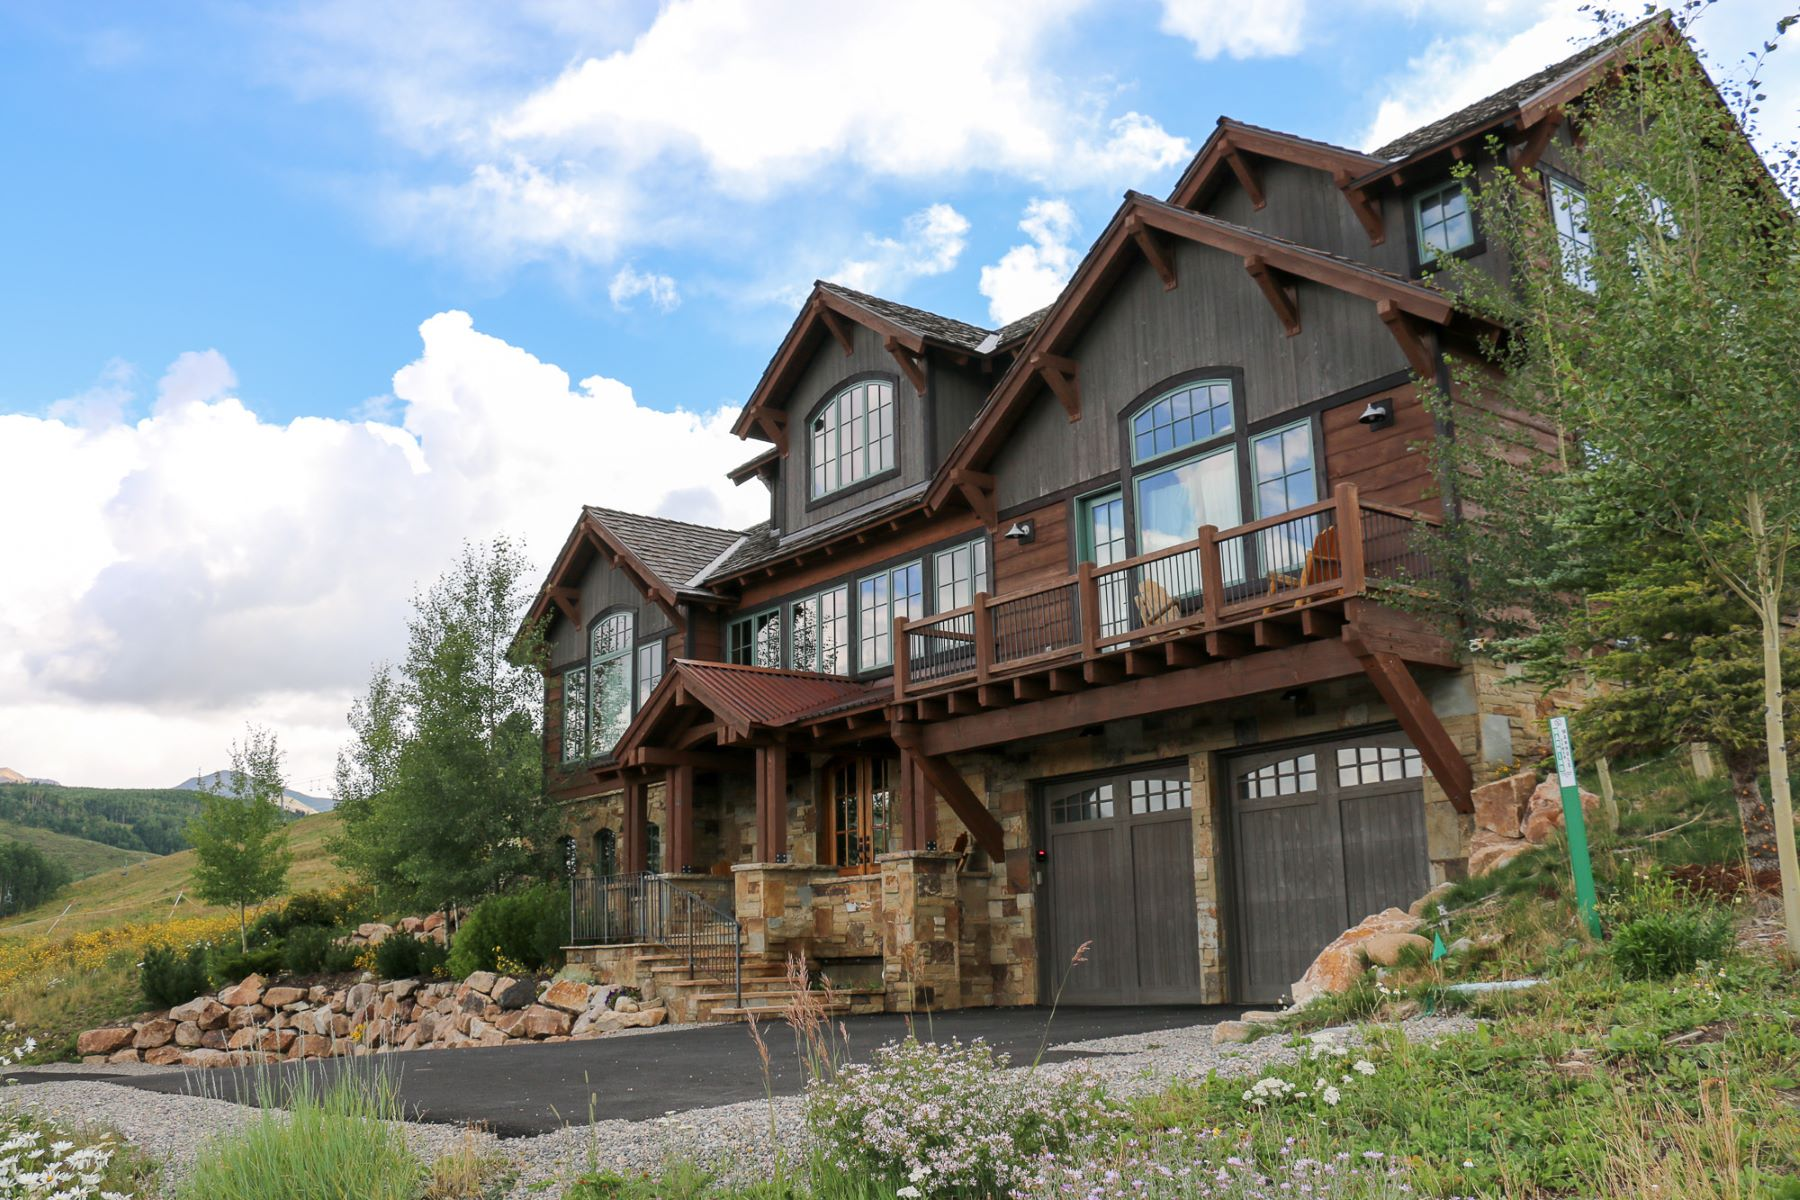 Casa Unifamiliar por un Venta en Ski-In/Ski-Out Elegance 4 Black Diamond Trail Mount Crested Butte, Colorado, 81225 Estados Unidos